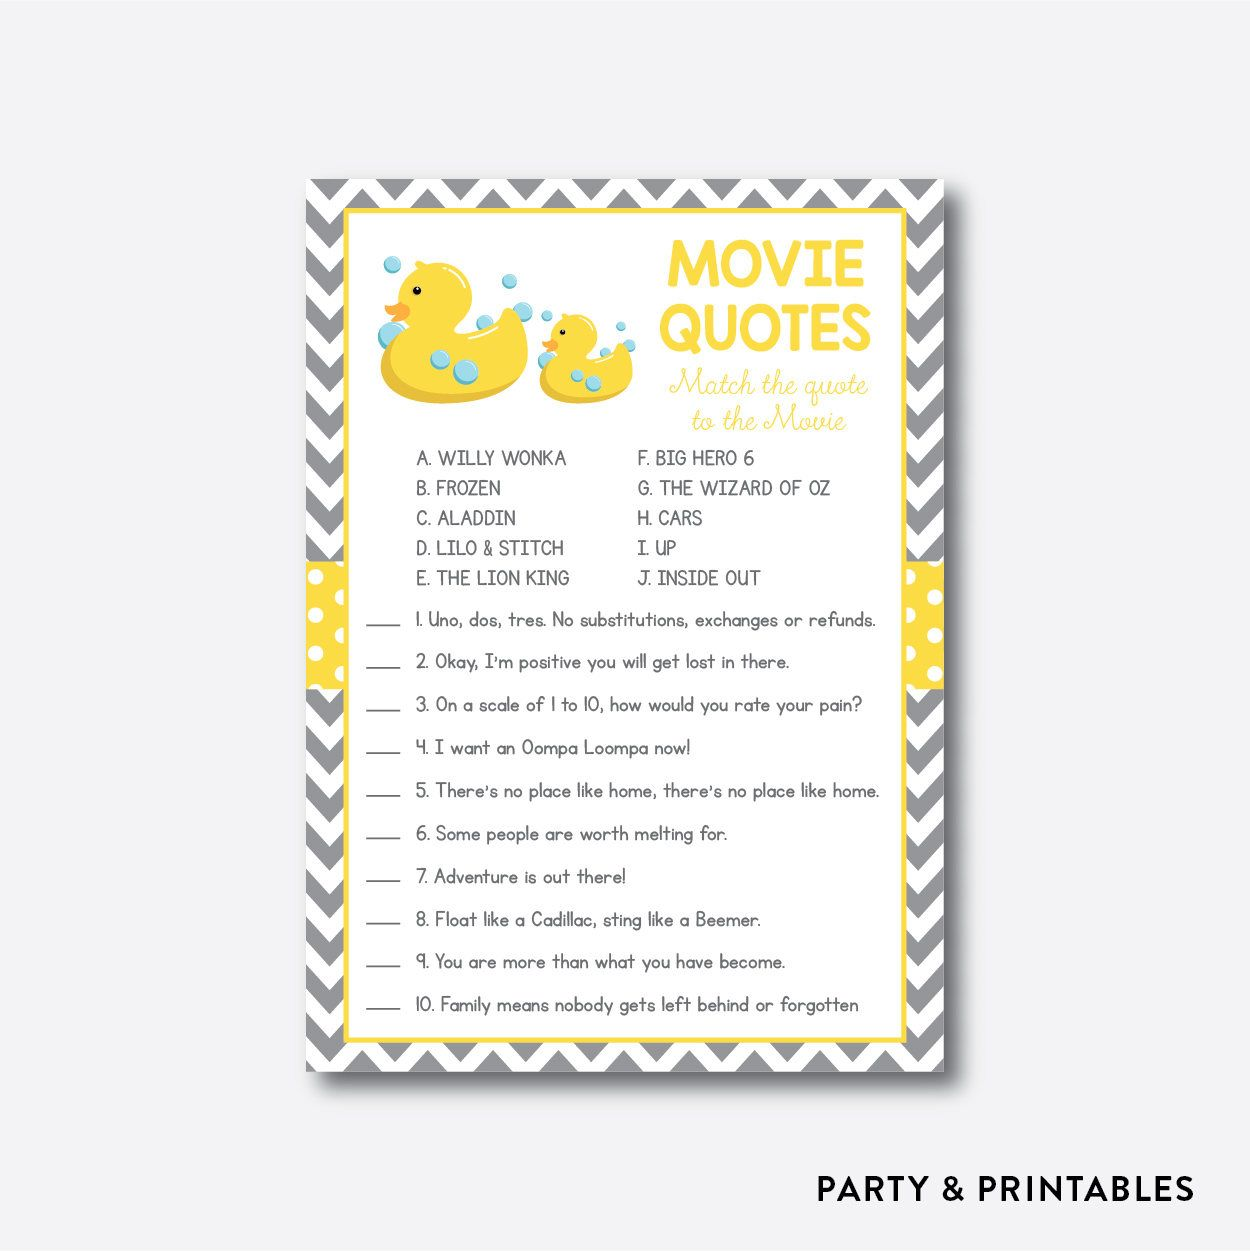 Instant Download Rubber Duck Movie Quotes Game Rubber Duck Movie Quotes Card Games Lilo And Stitch